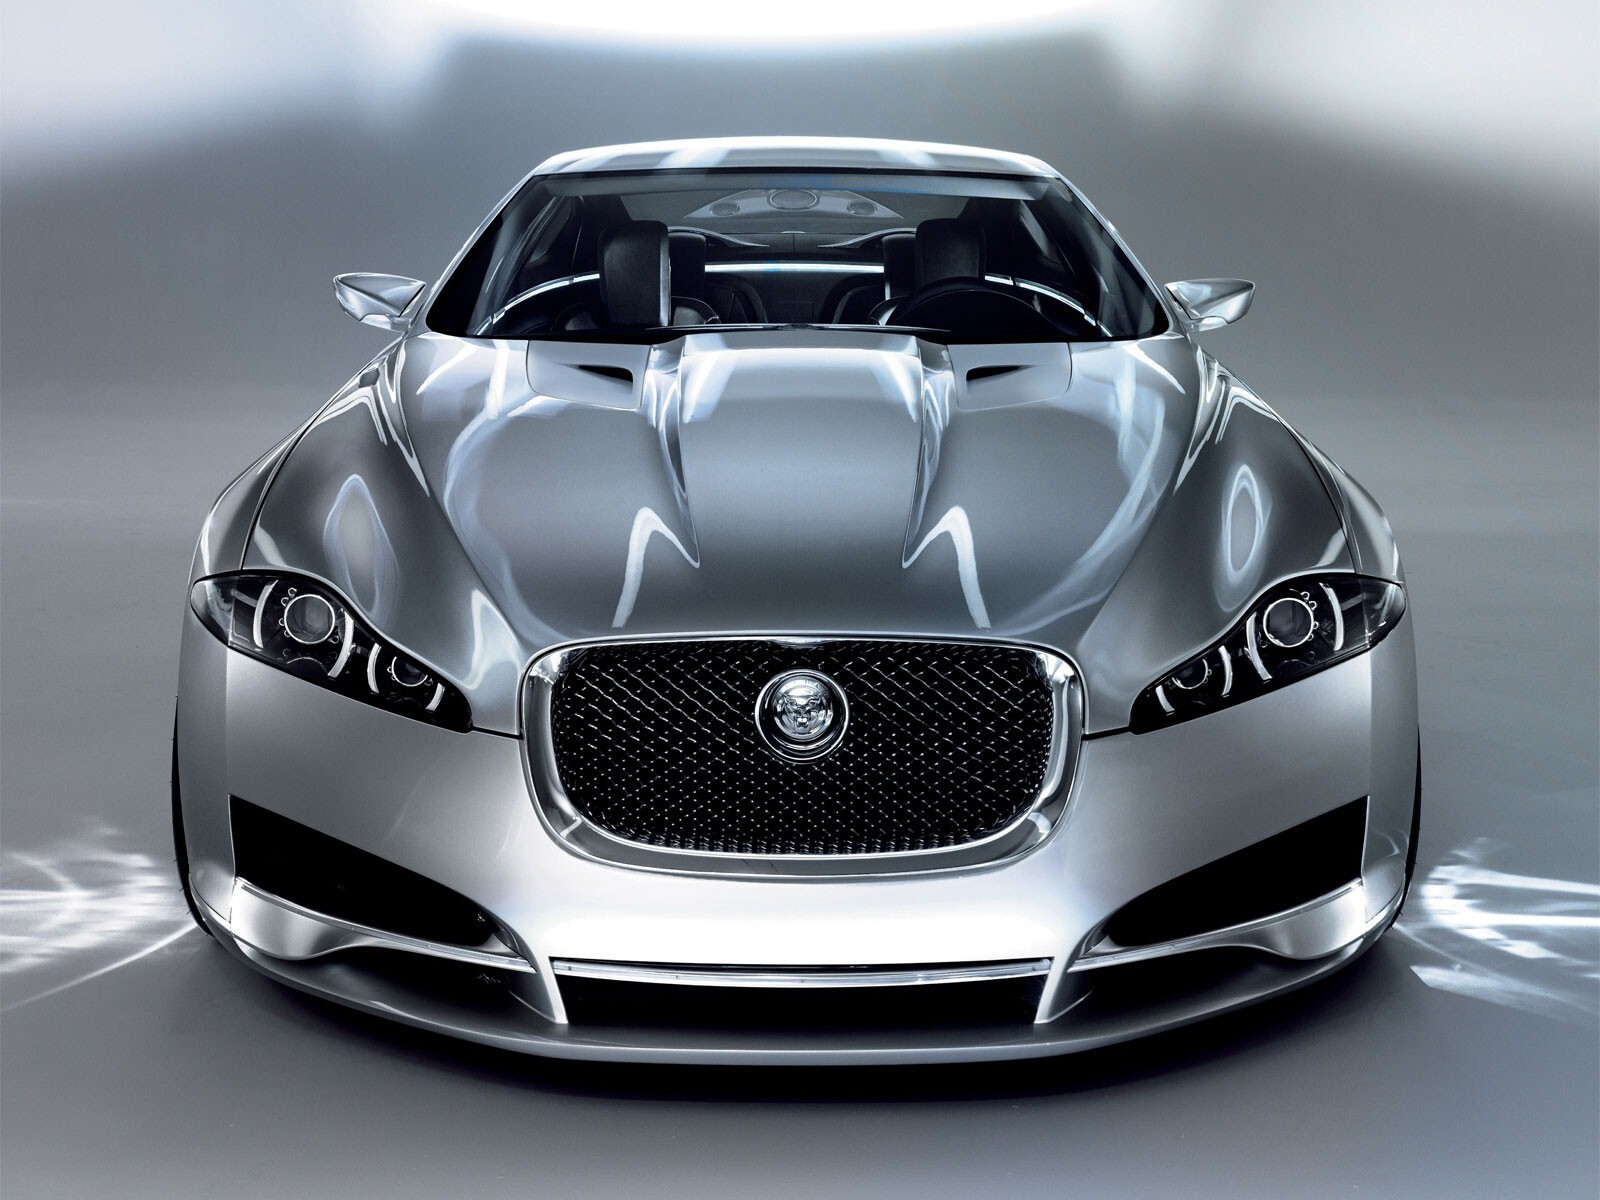 Silver Jaguar Car Wallpaper